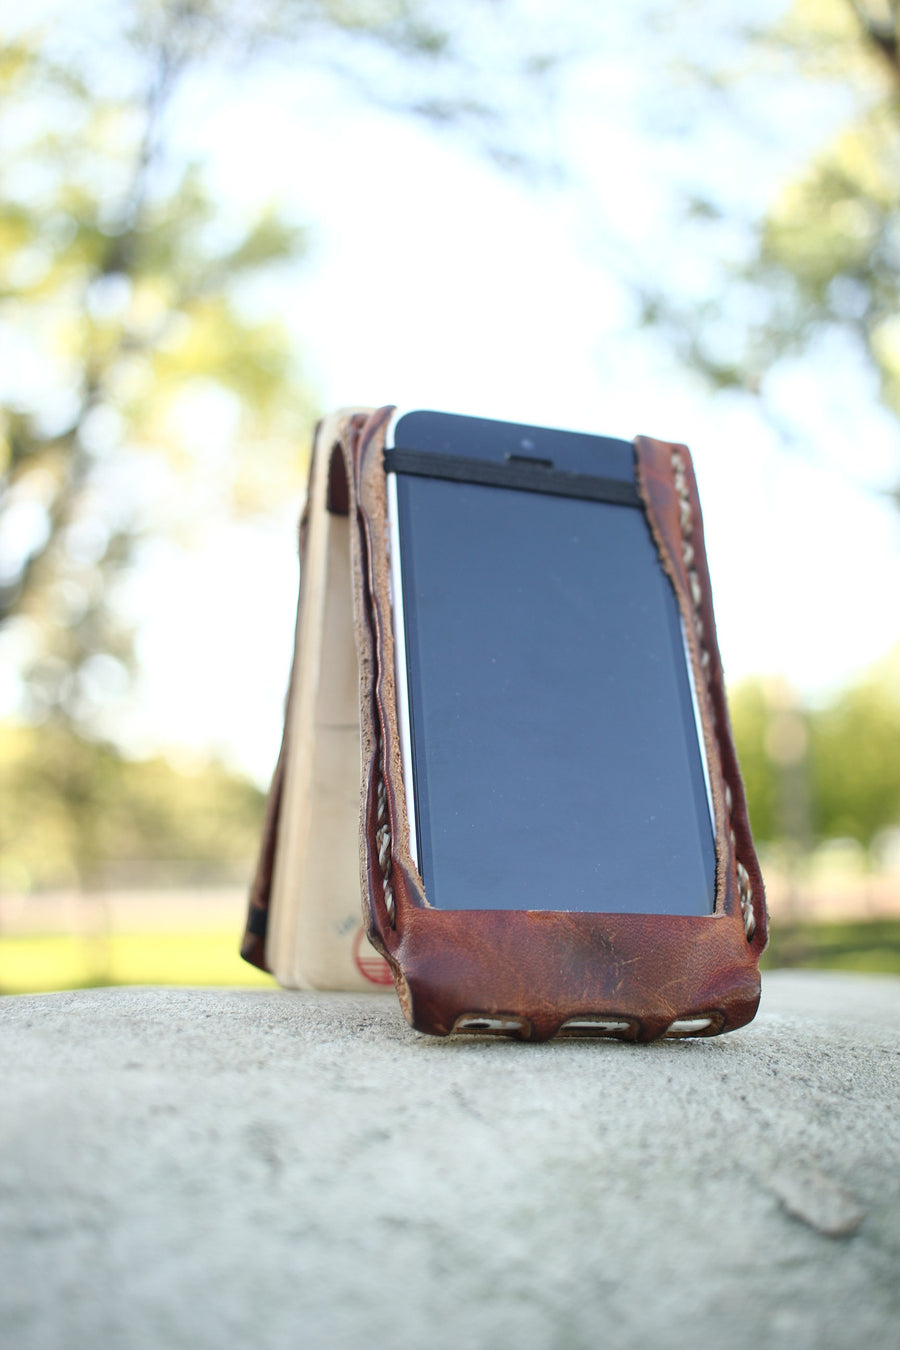 iPhone 6 Wallet Pad